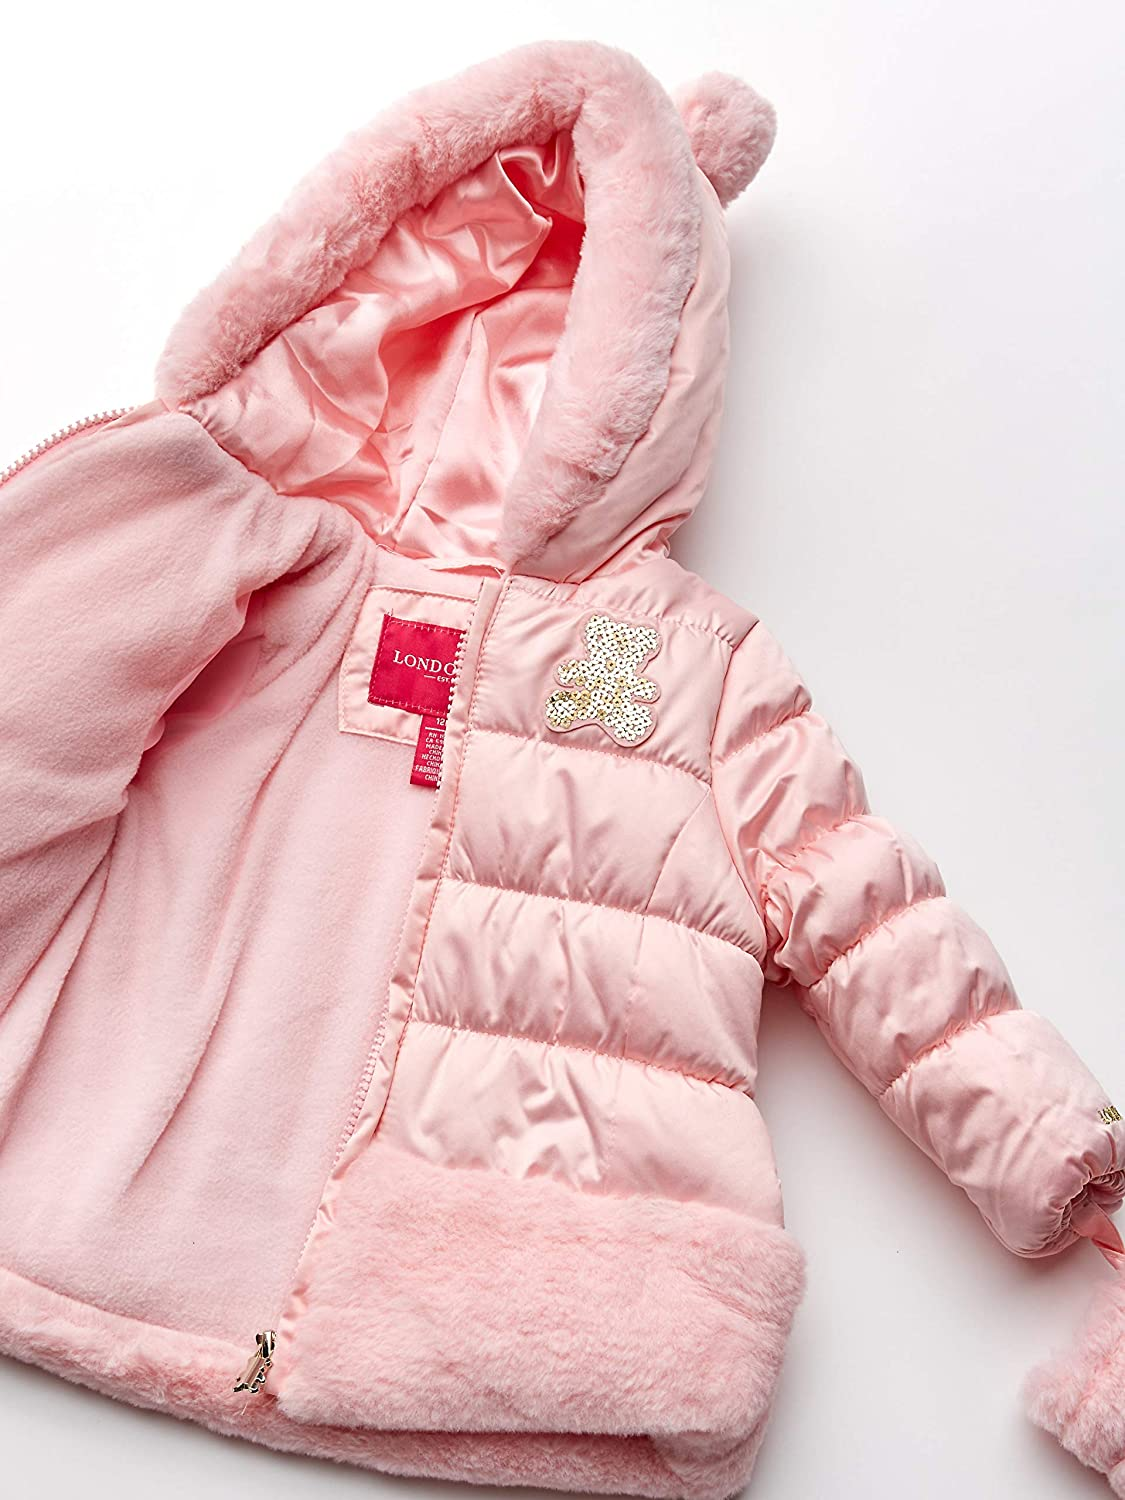 12 Months 1034 London Fog Shiny Shimmer Poly Faux Fur Hooded Coat Baby Girls